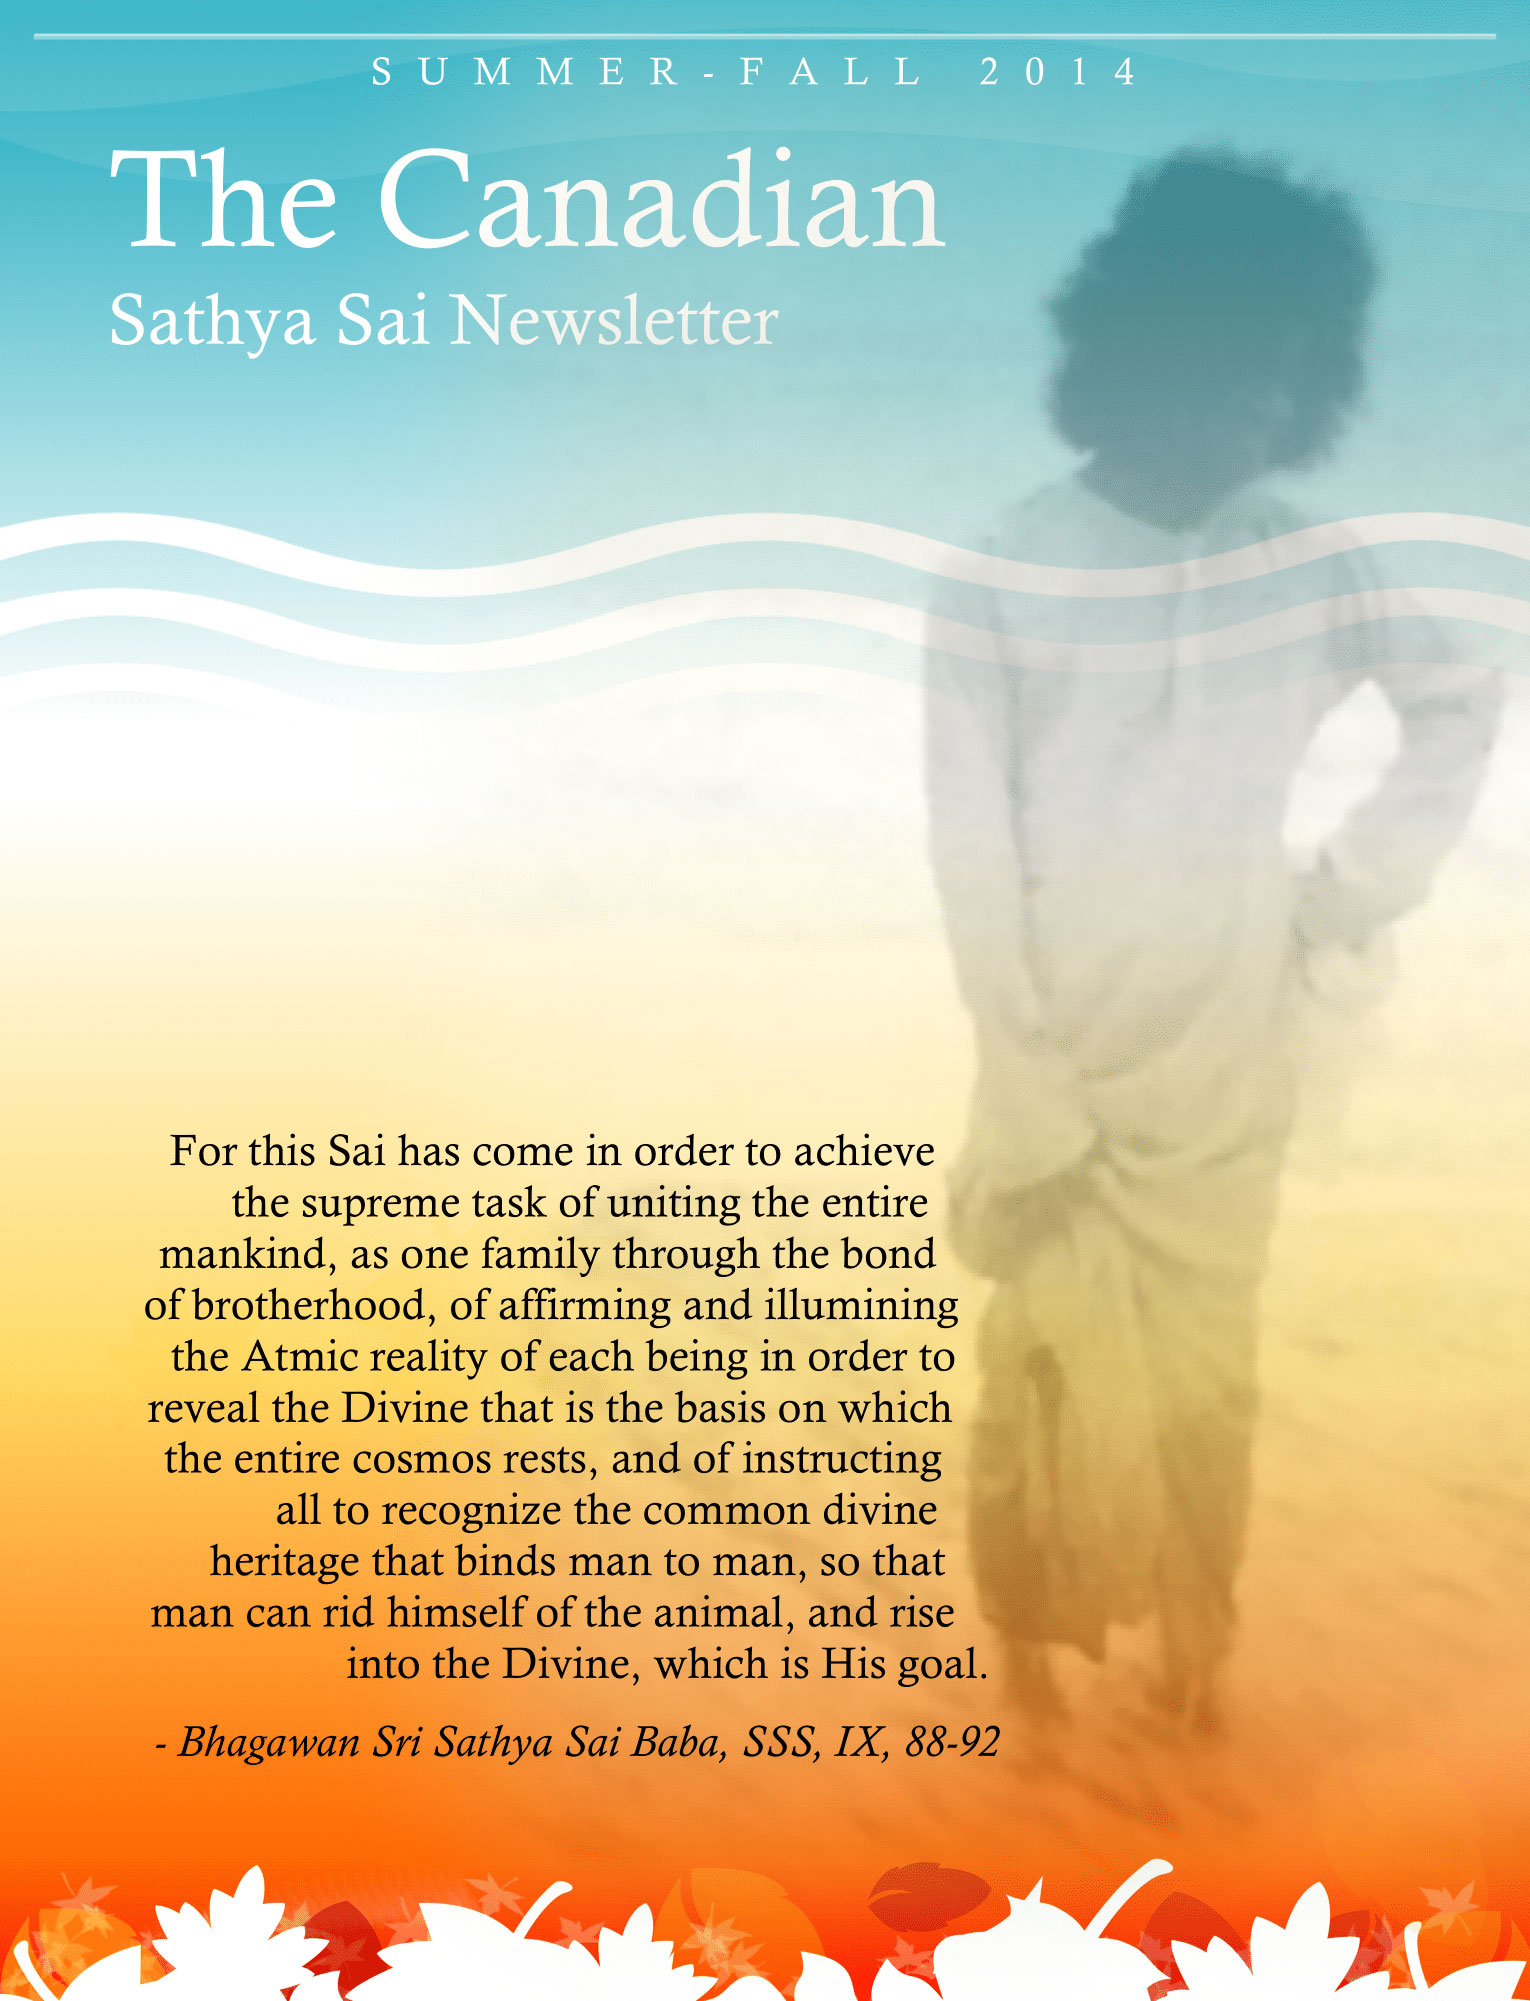 The Canadian Sathya Sai Magazine - Summer-Fall 2014